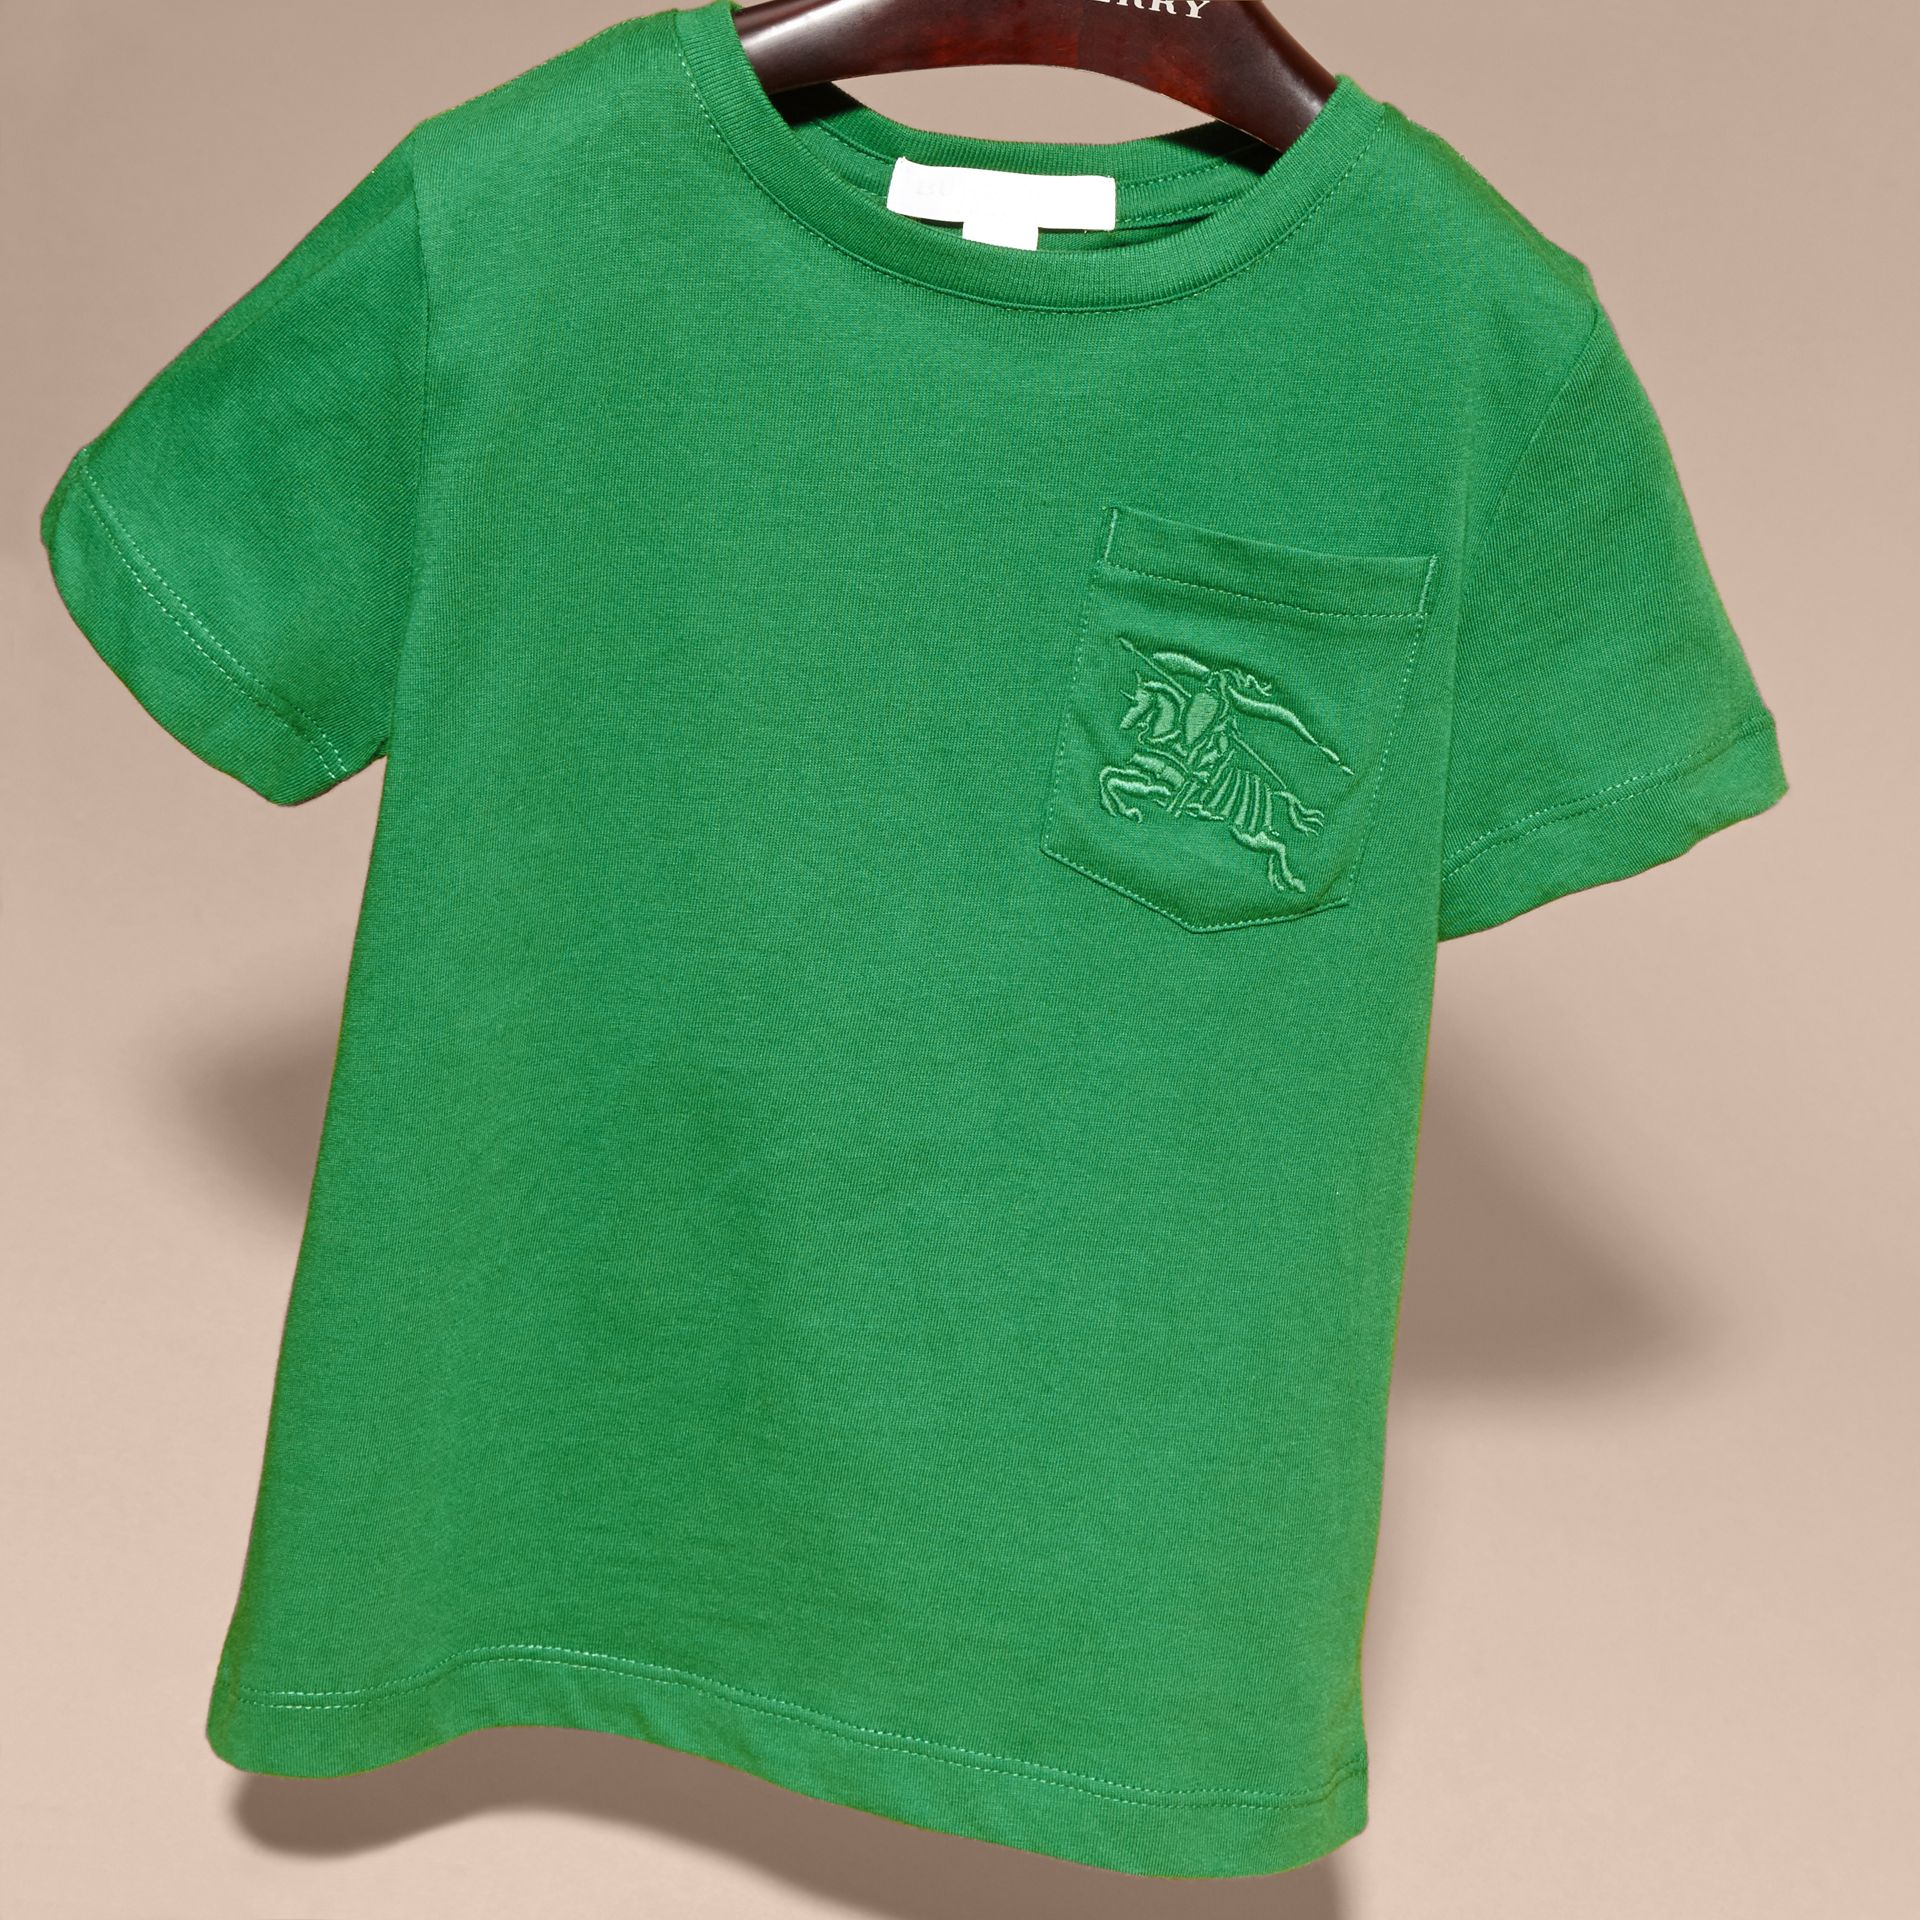 Crew Neck Cotton T-shirt in Bright Pigment Green - gallery image 3